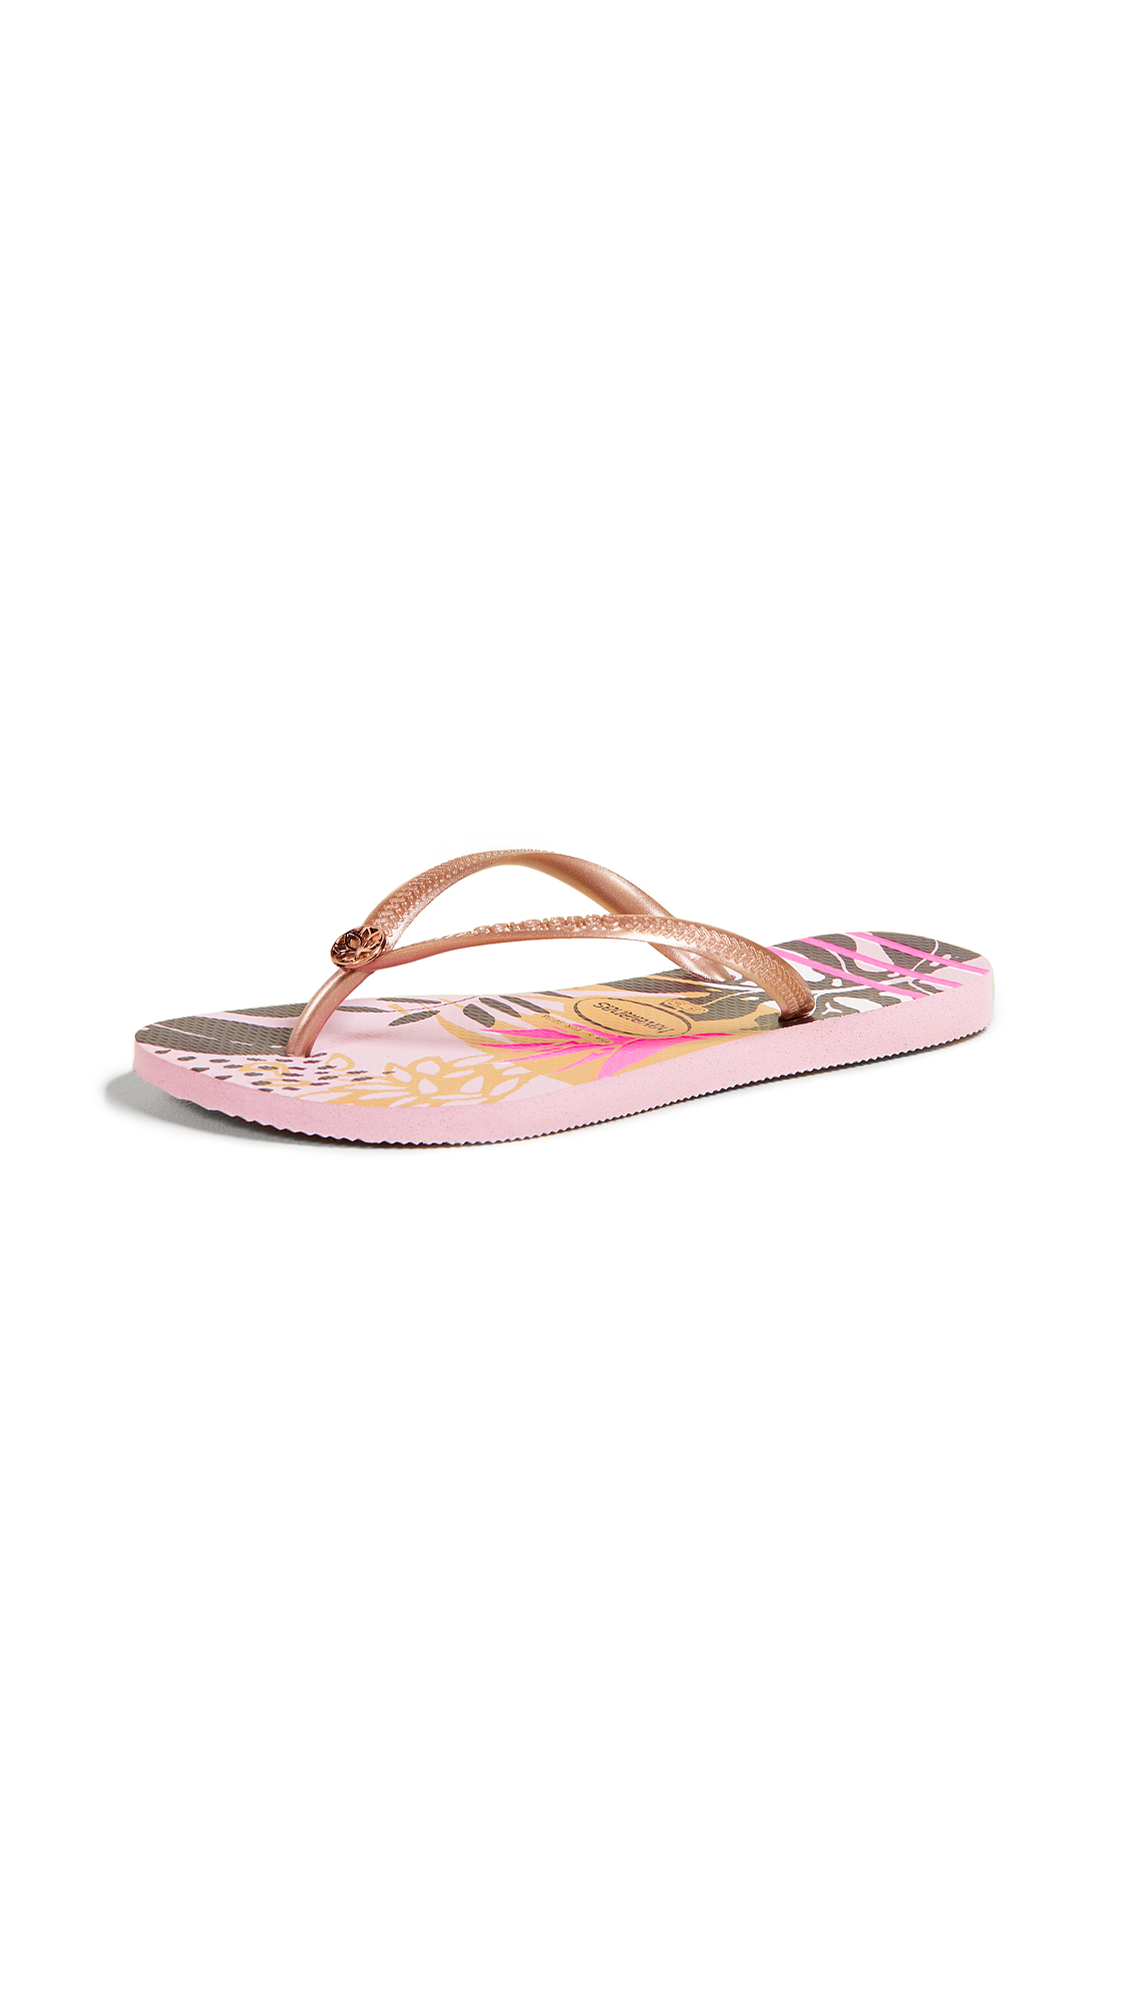 Havaianas Slim Follage Flip Flops - Rosa Quartz